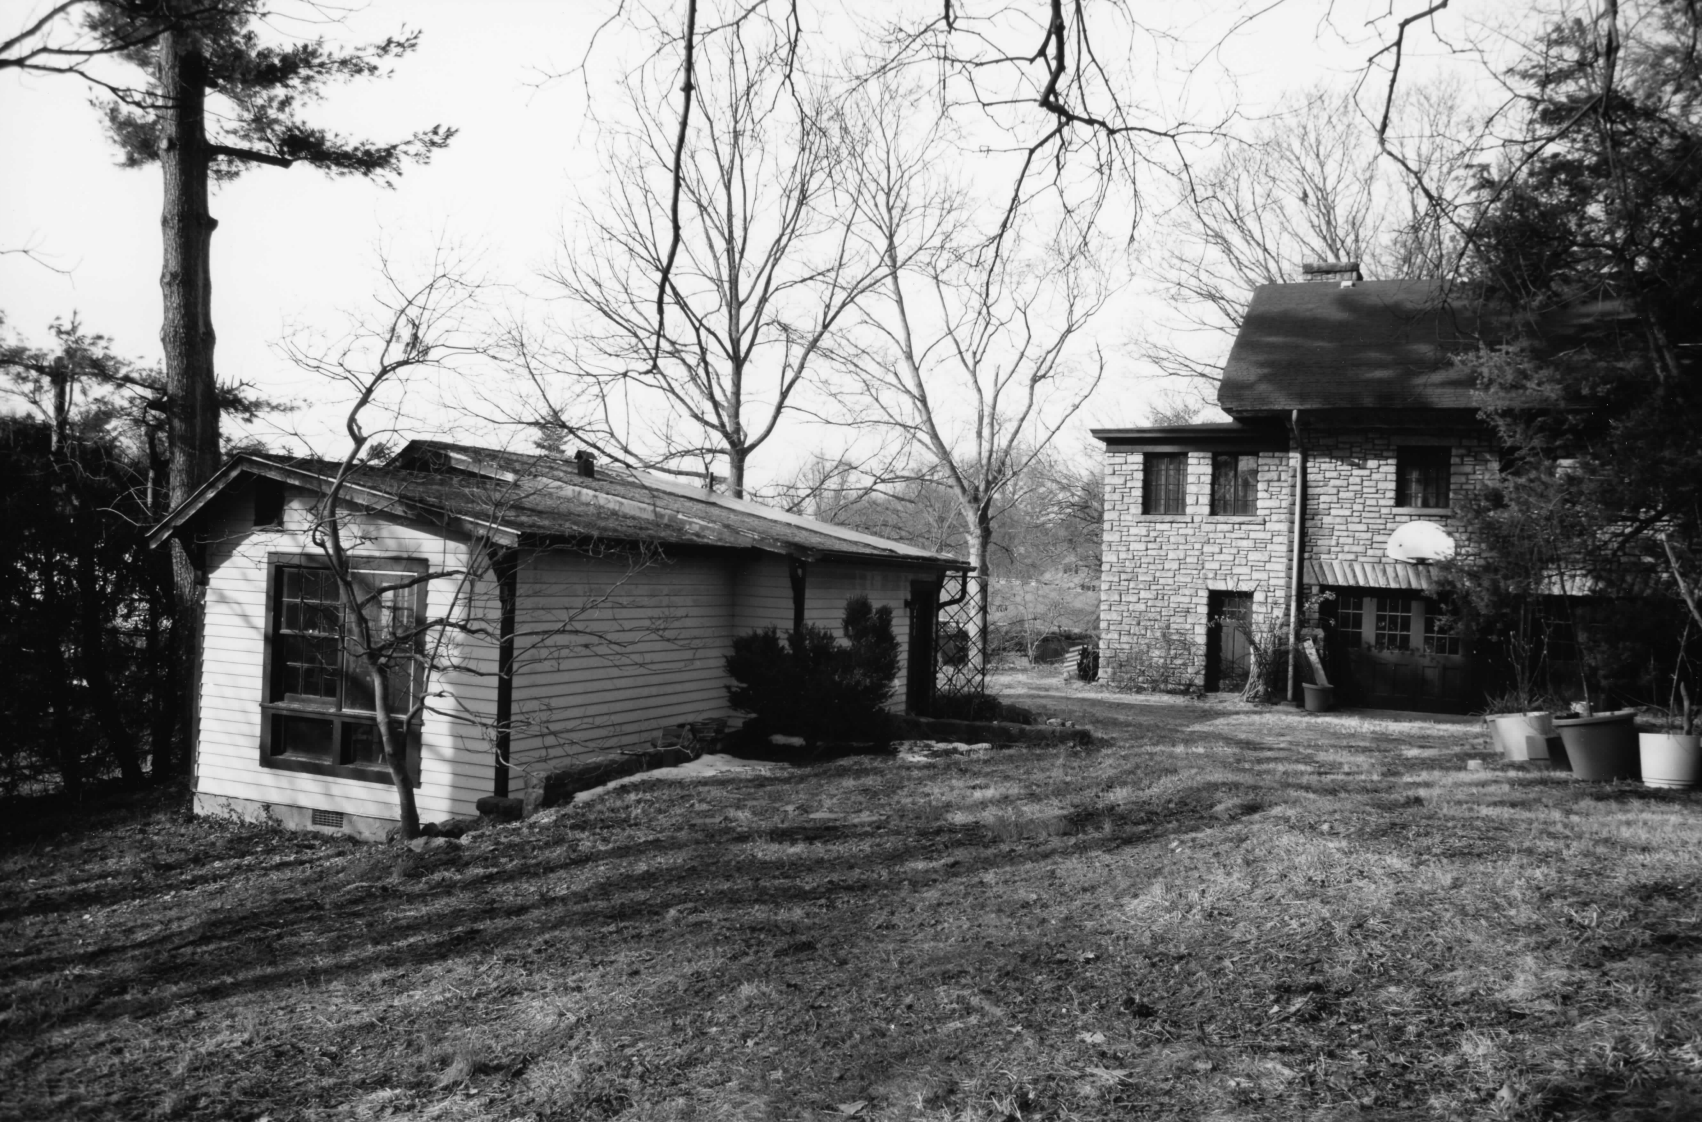 South side of the house, showing the playhouse built by the Biggs family